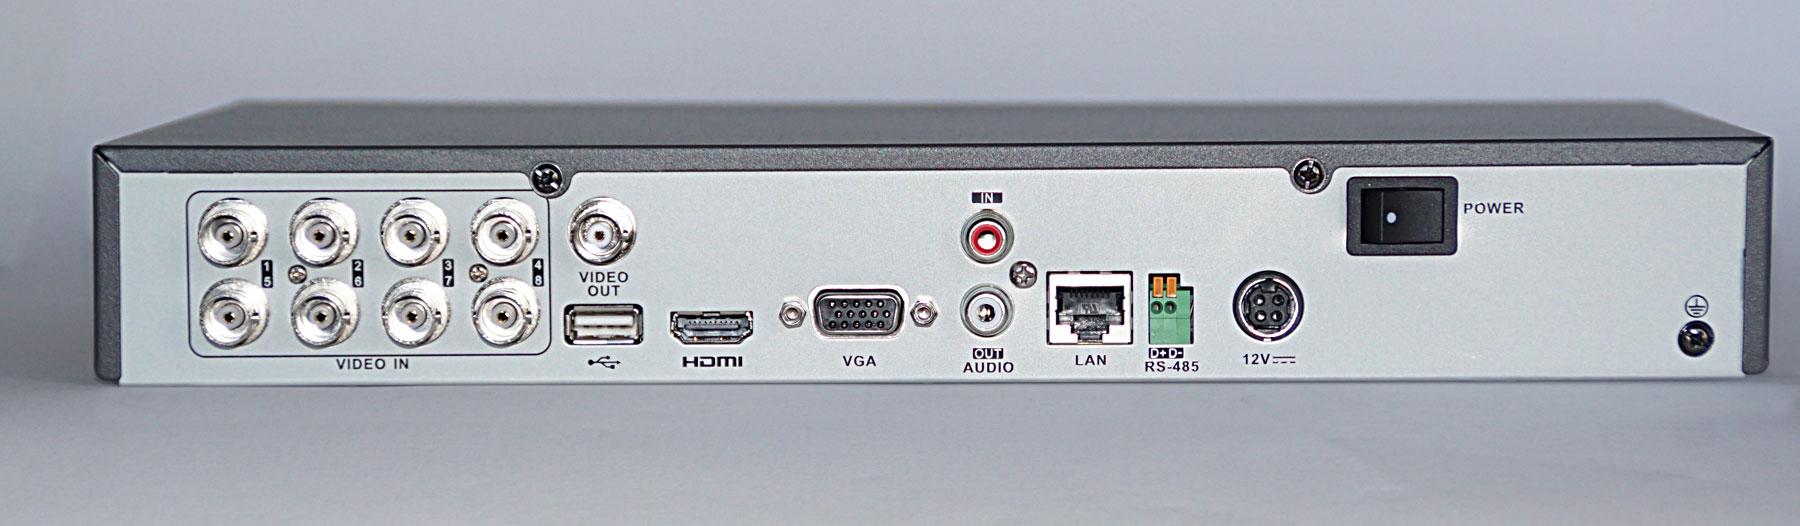 Ds 7208hghi Sh Hikvision Full Hd 8 Channel Cctv Recorder 4tb